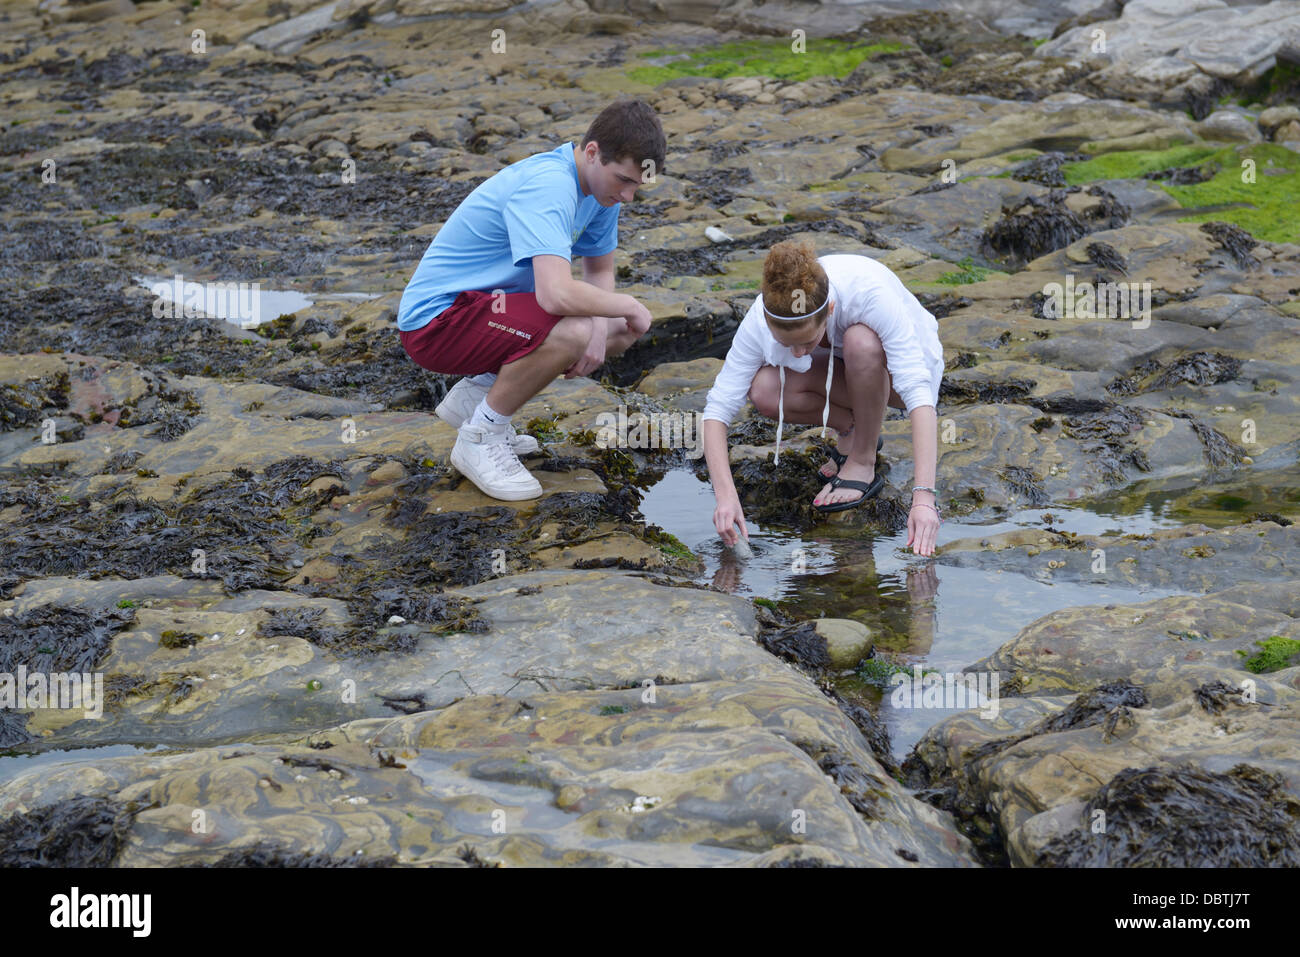 Tidepooling, Point Lobos State Natural Reserve, CA - Stock Image